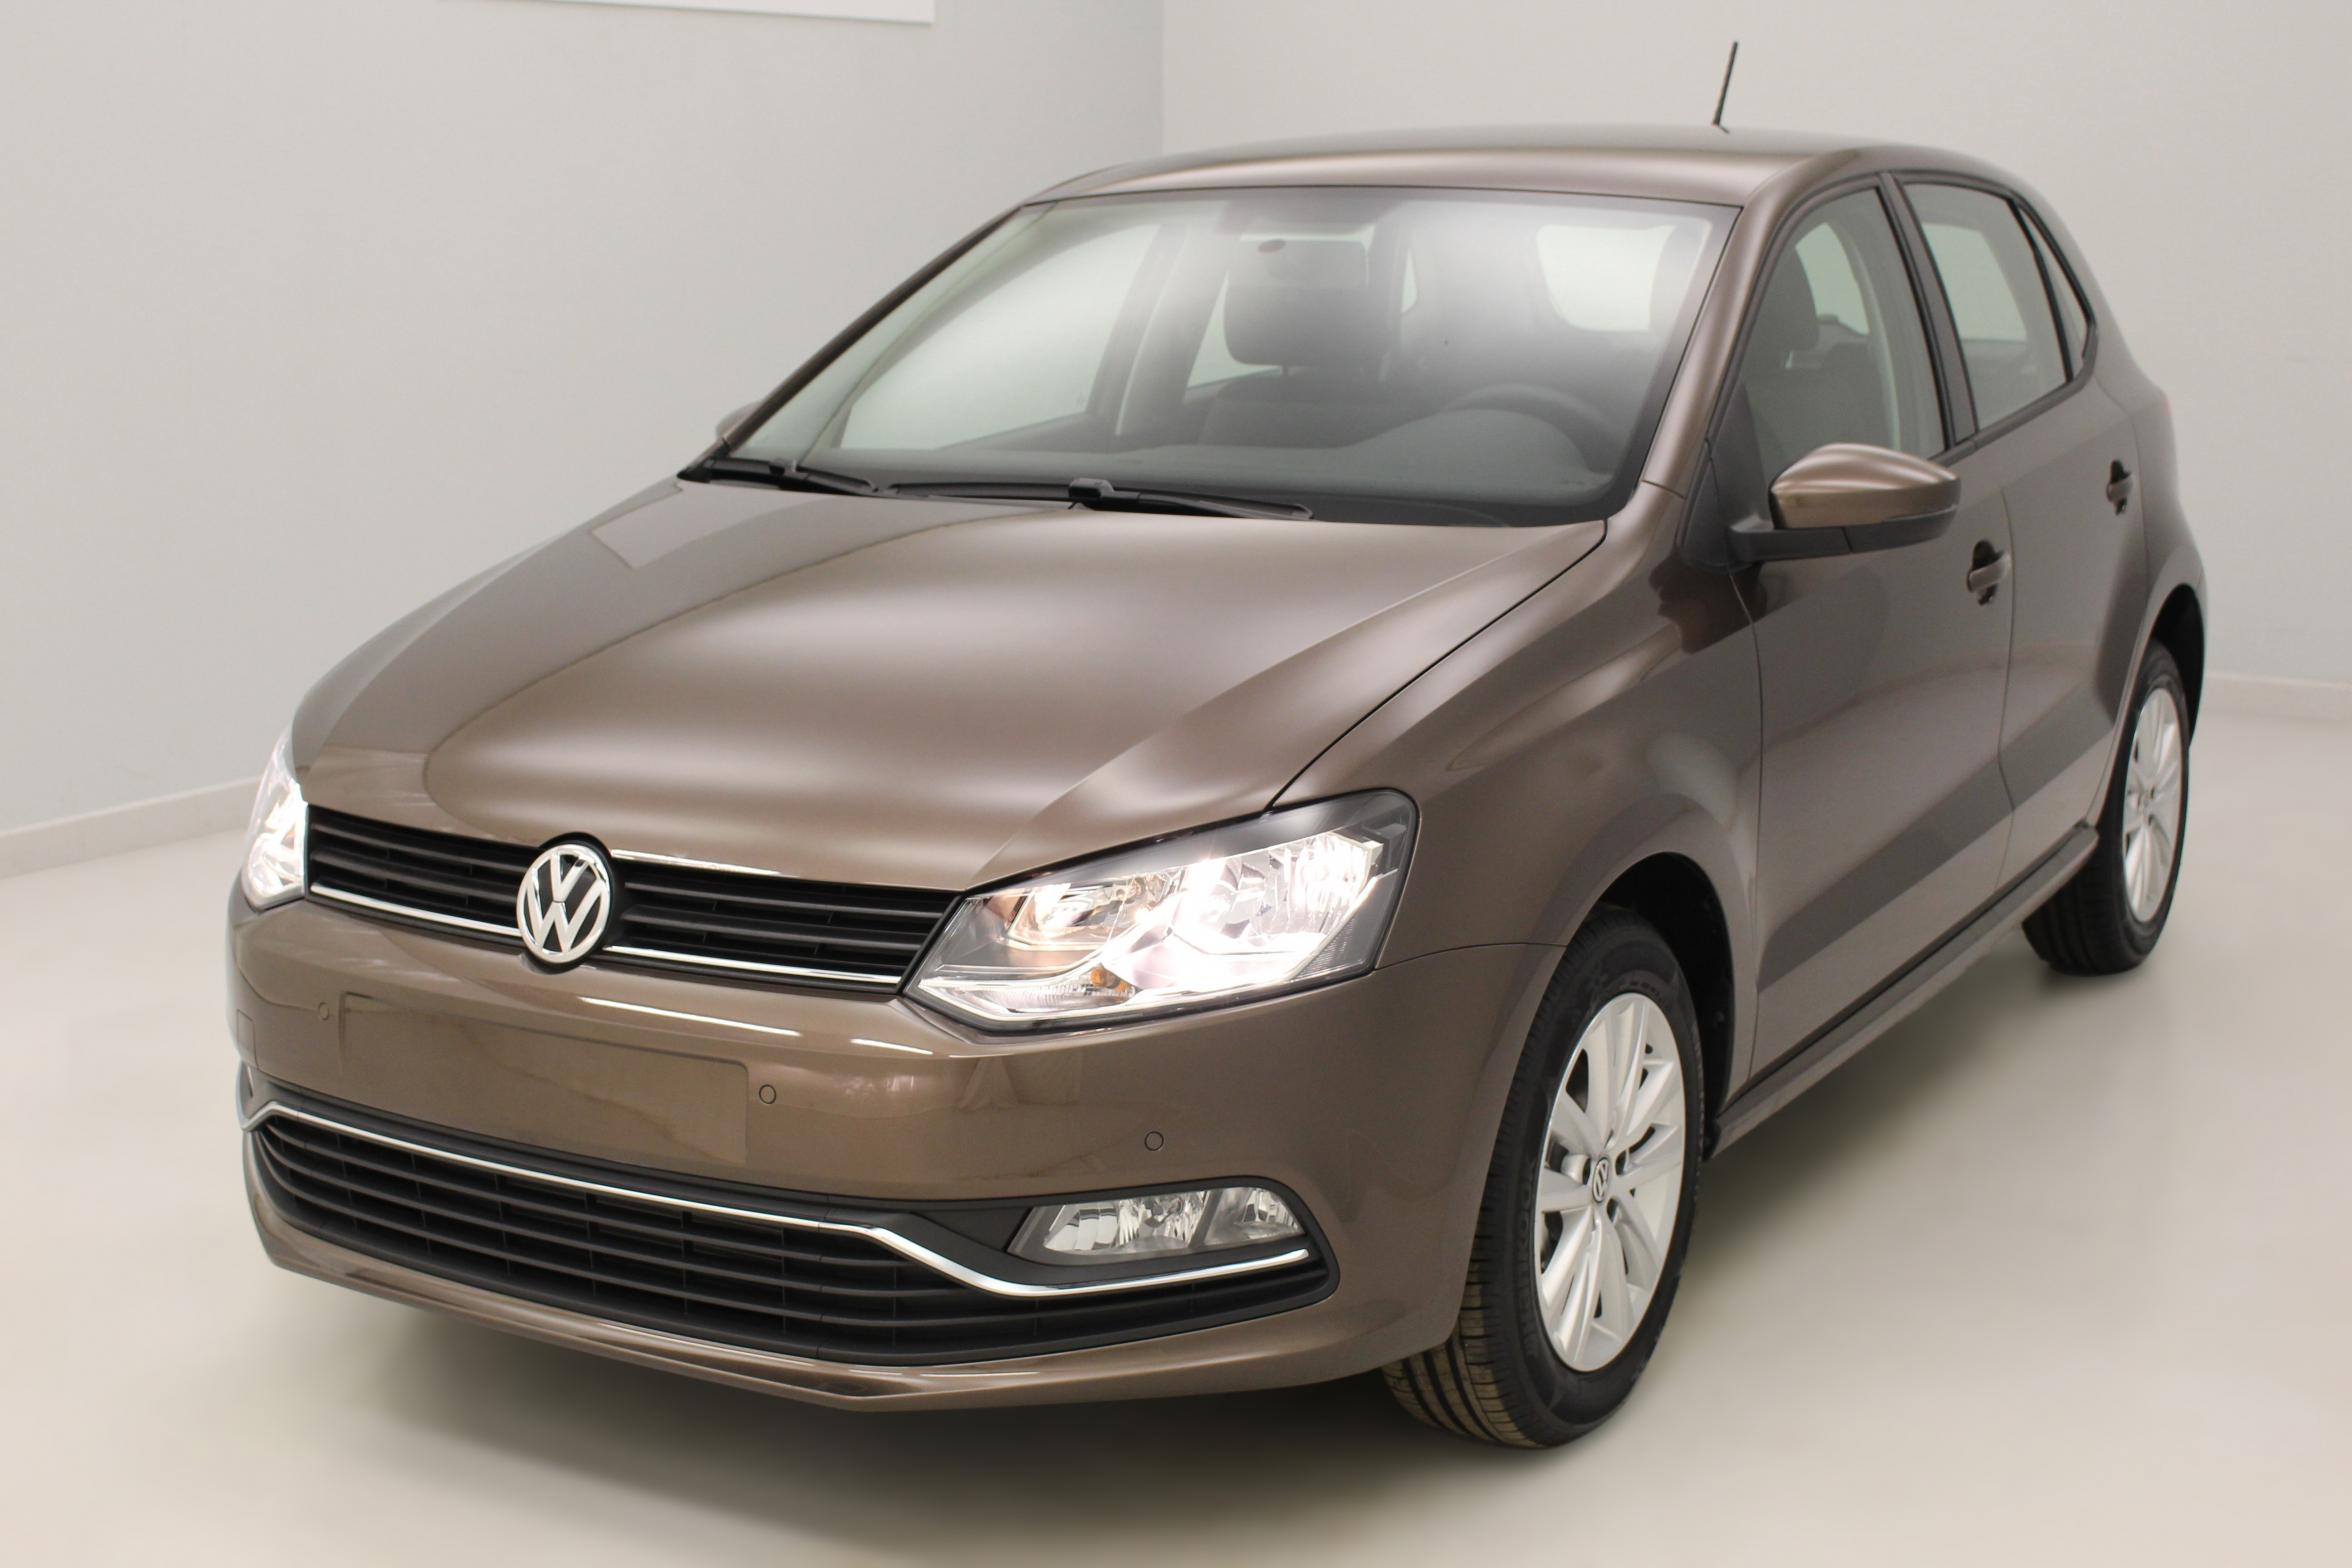 VOLKSWAGEN Nouvelle Polo 1.4 TDI 90 BlueMotion Technology Confortline Brun Graciosa - Garantie 5 ans ou 100.000 kms avec options